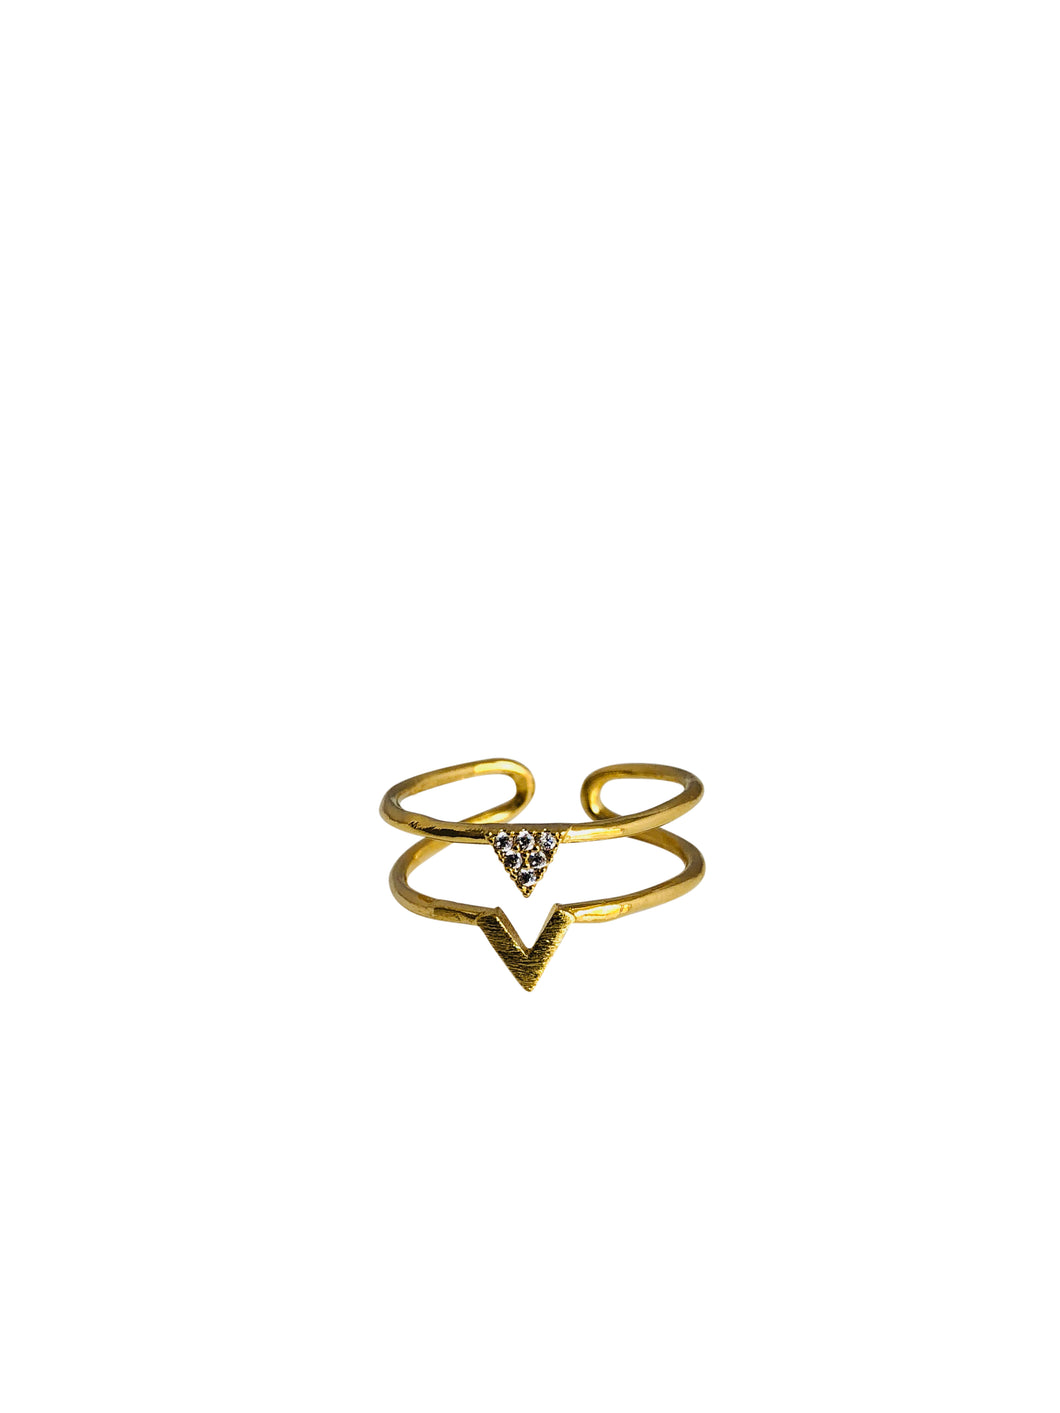 Dbl v triangle ring RN20047